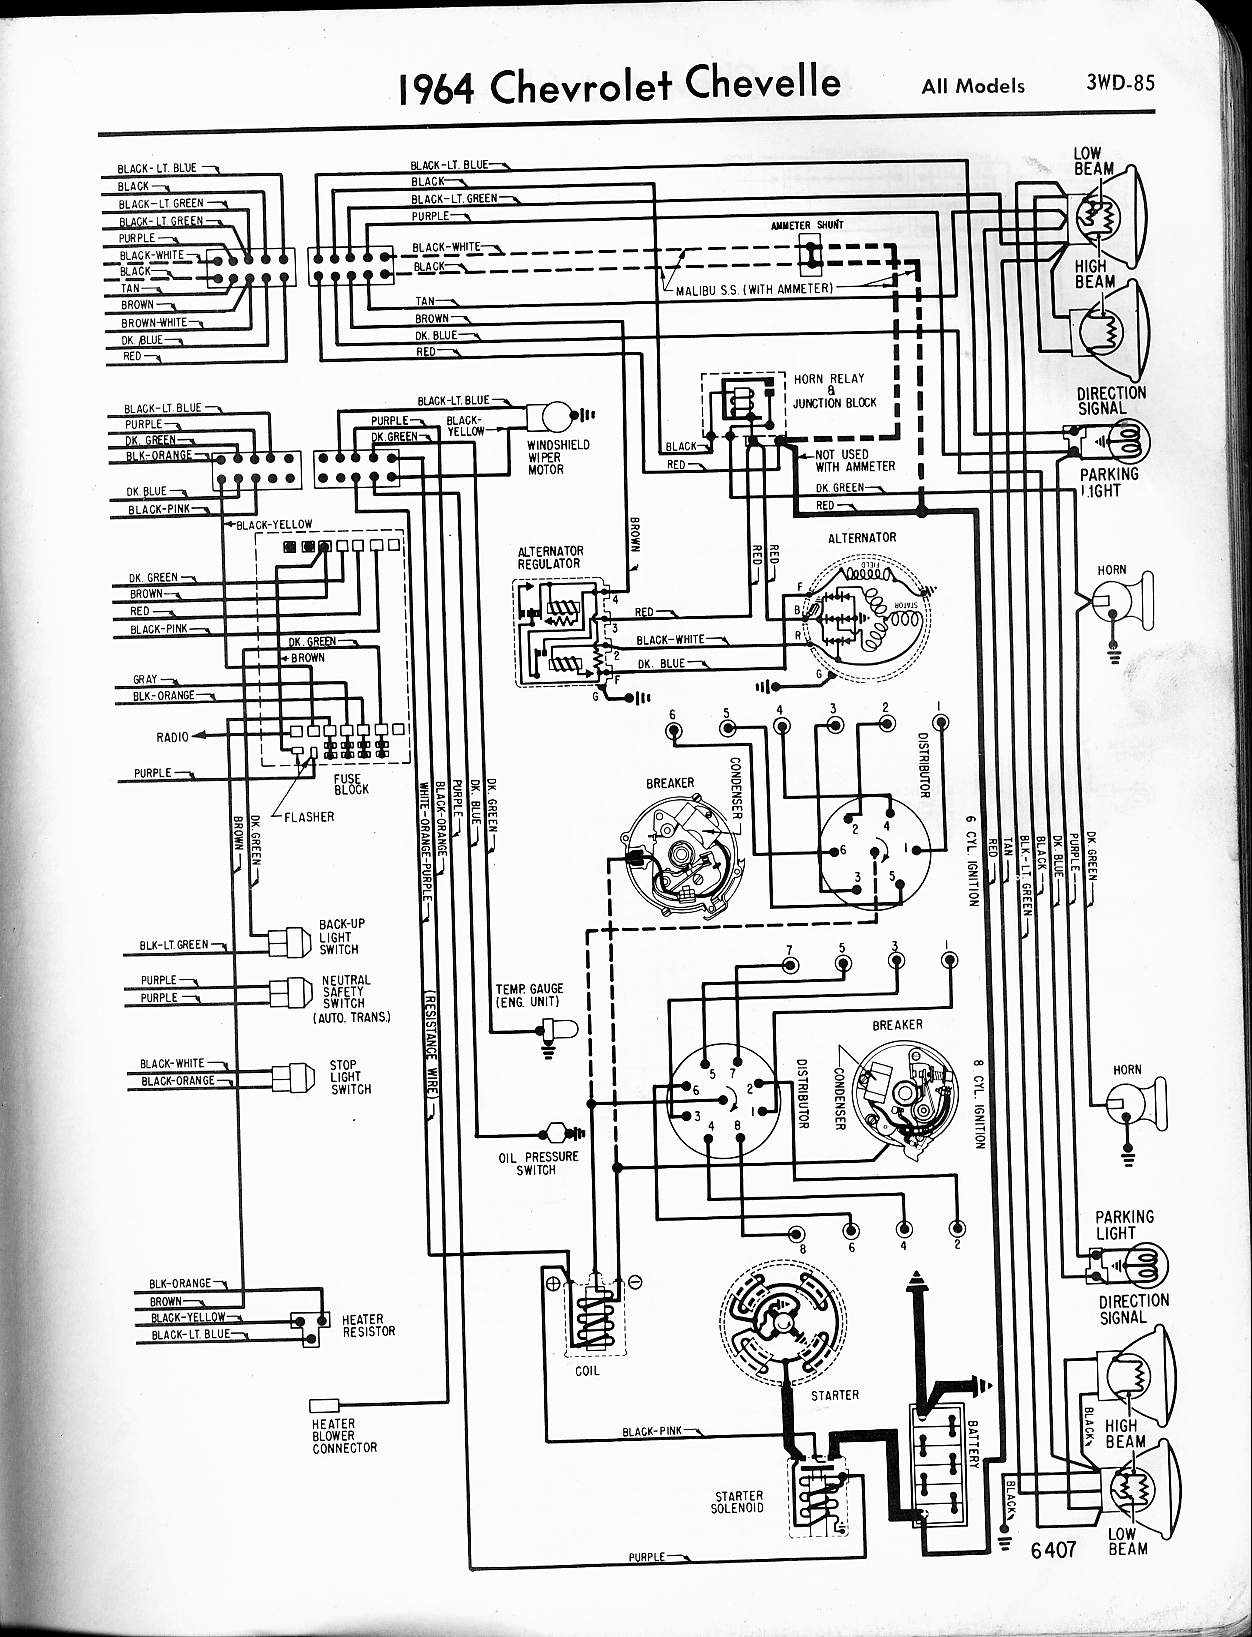 Chevy Diagrams 1973 Jeep Cj5 Alternator Wiring Diagram 1964 Chevelle Figure A B